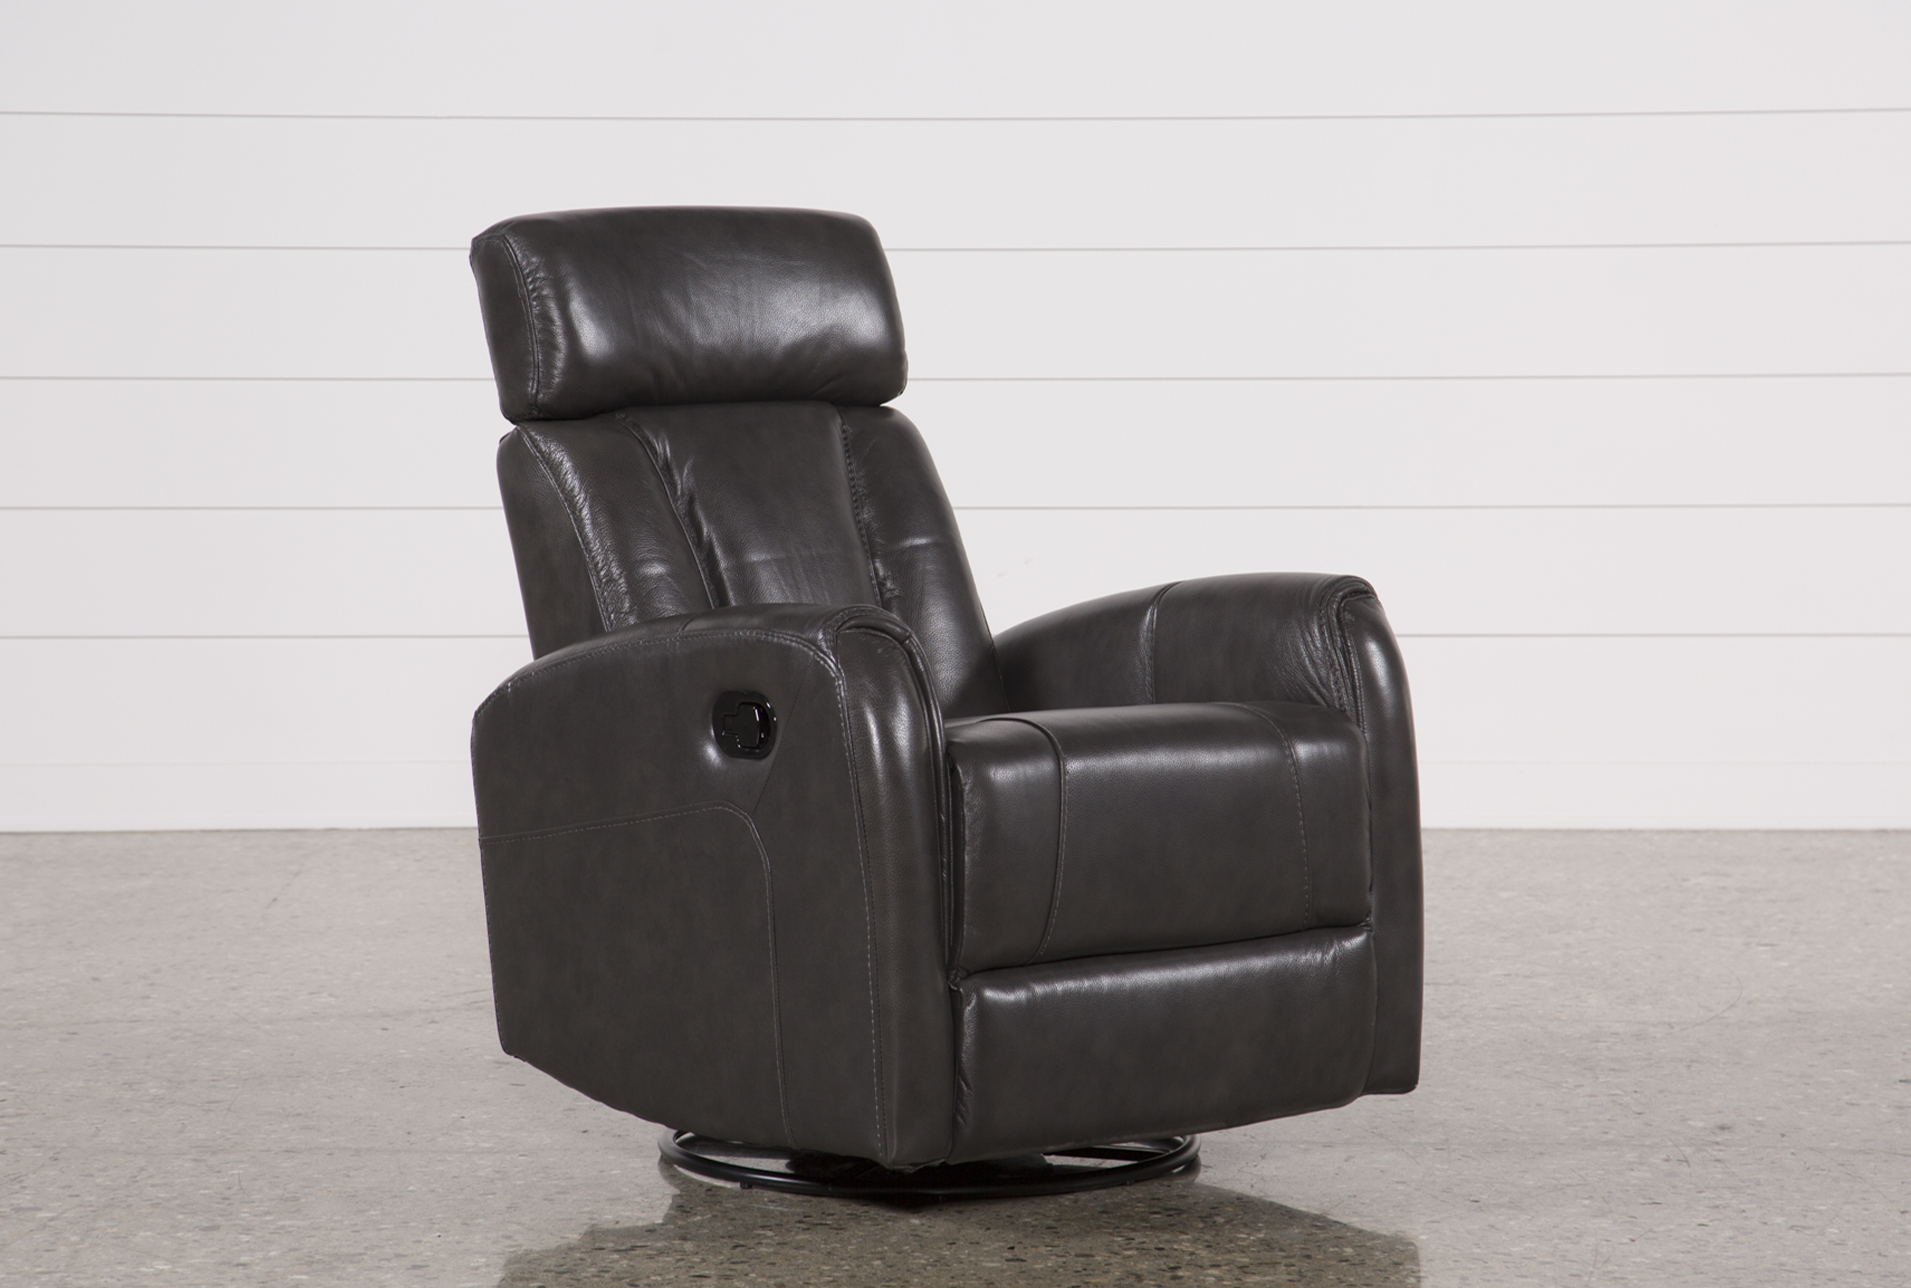 Lyle Grey Leather Swivel Glider Recliner W/ Adjustable Headrest (Qty: 1)  Has Been Successfully Added To Your Cart.